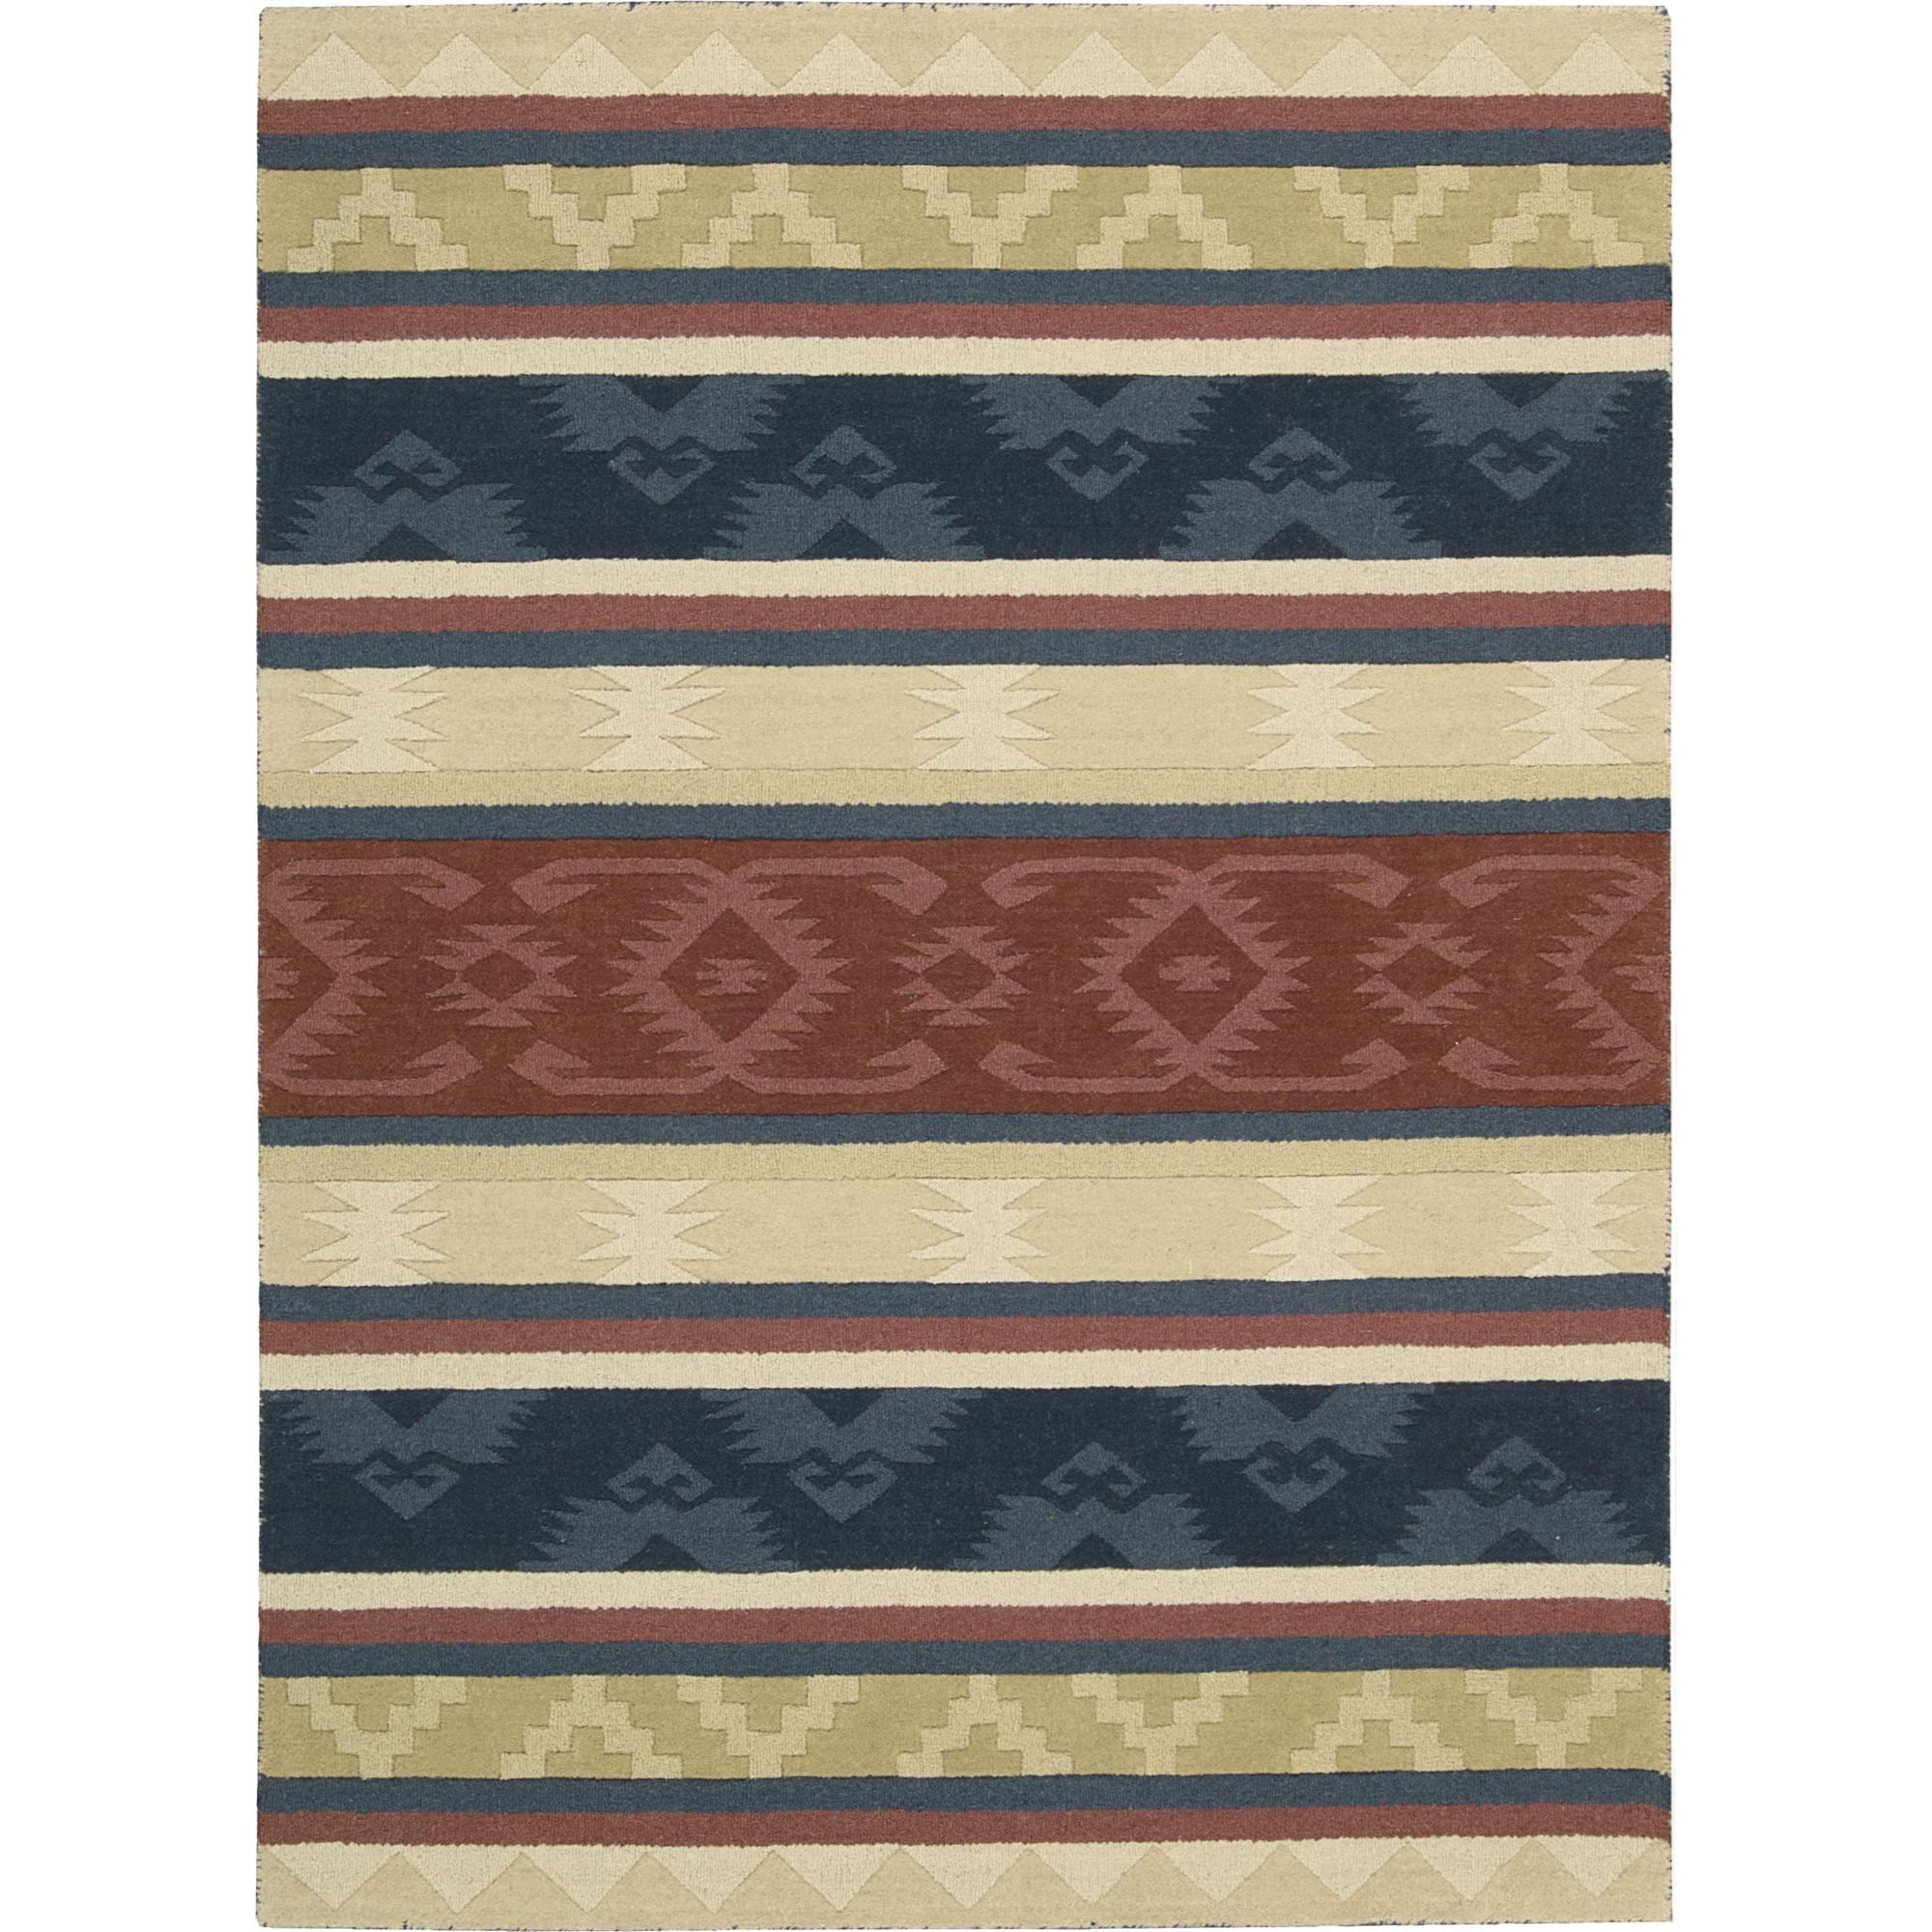 "Nourison India House 8' x 10'6"" Multicolor Area Rug - Item Number: 22013"